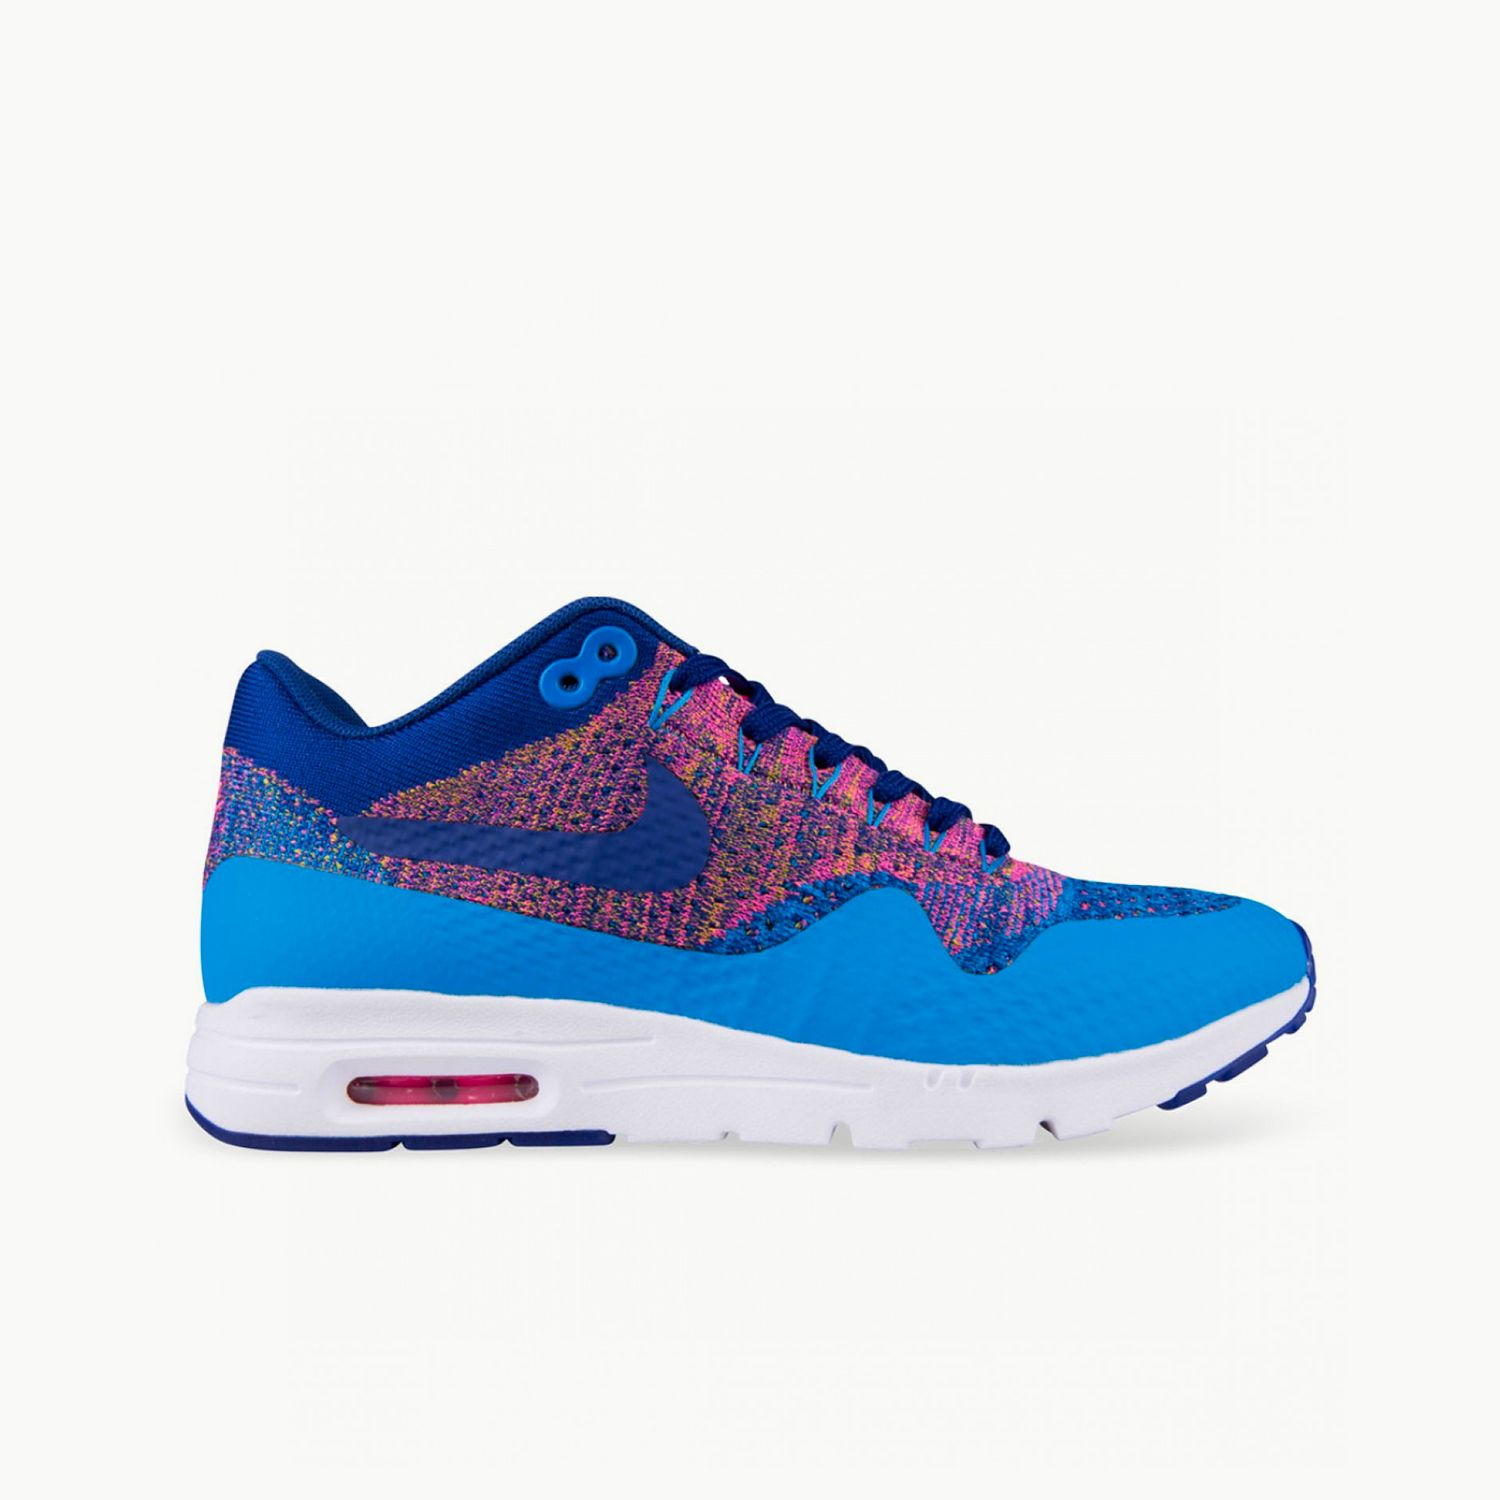 100% authentic b999e 395b0   EXCLUSIVE   NIKE SPORTSWEAR AIR MAX 1 ULTRA FLYKNIT WOMENS   Available at